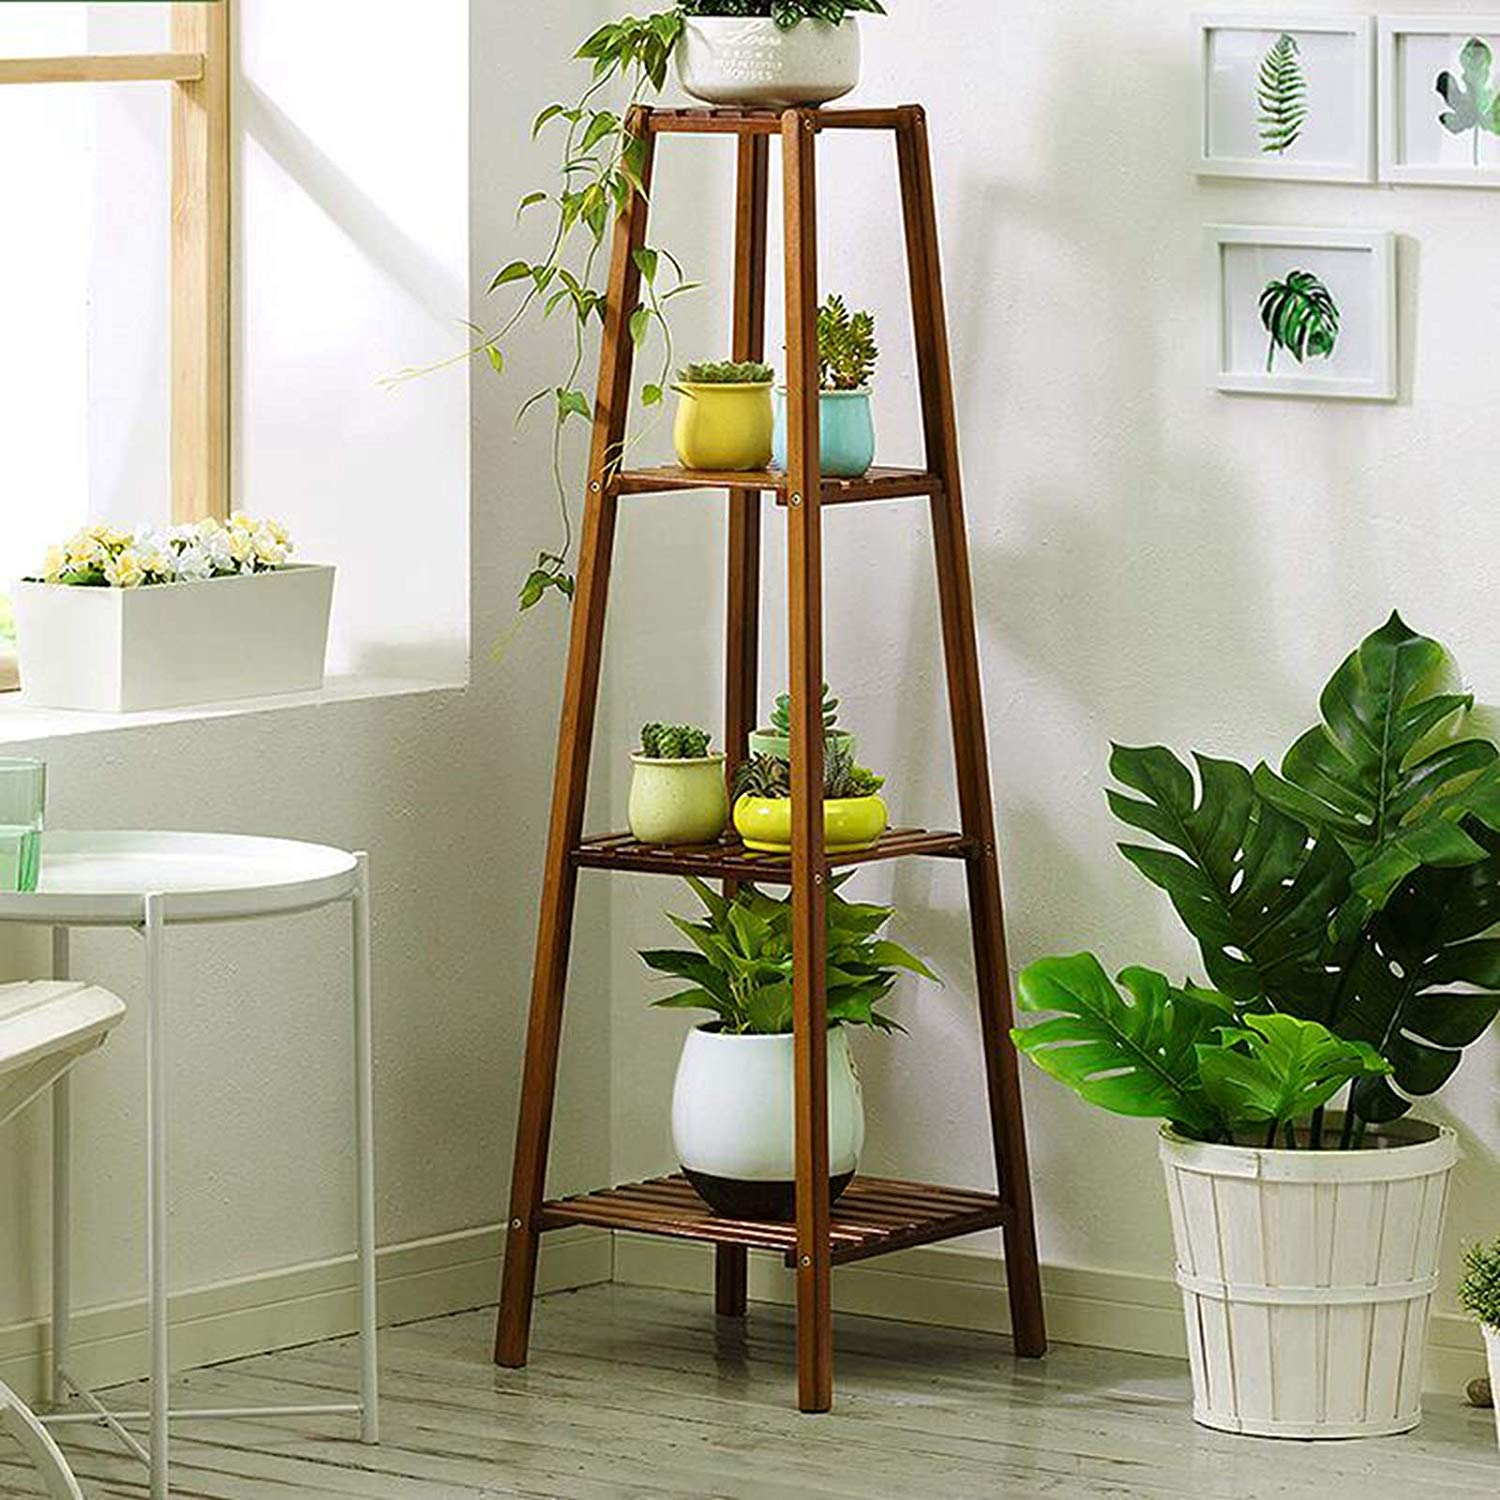 Magshion Bamboo 4 Tier Tall Plant Stand Pot Holder Small Space Table Walmart Com Walmart Com